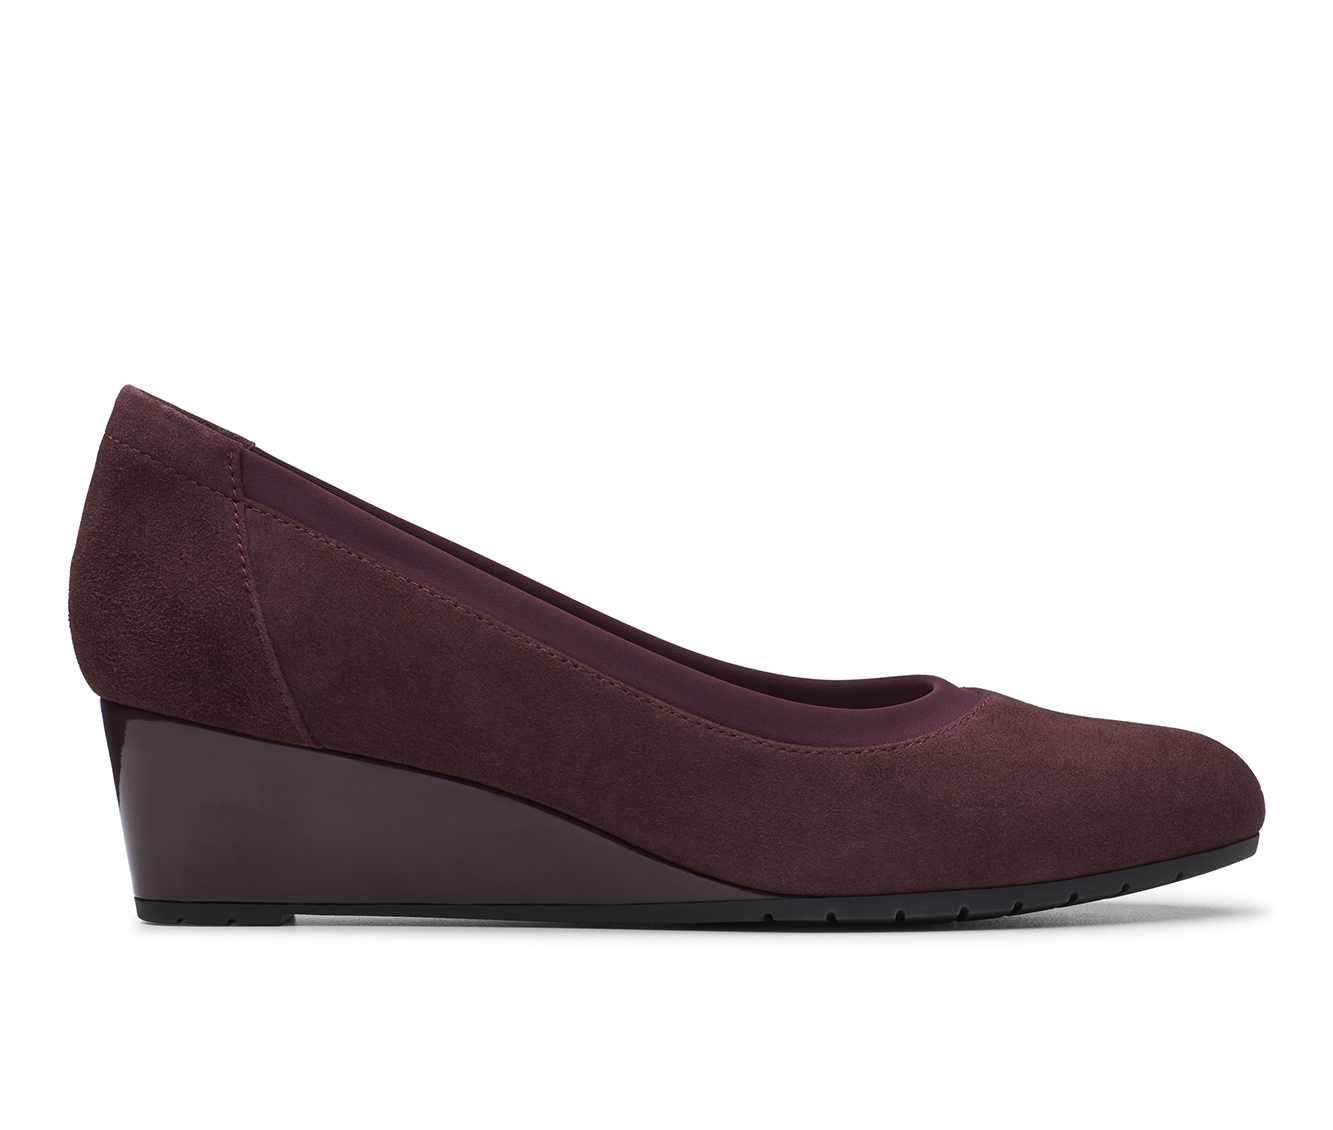 Clarks Mallory Berry Women's Dress Shoe (Red Leather)